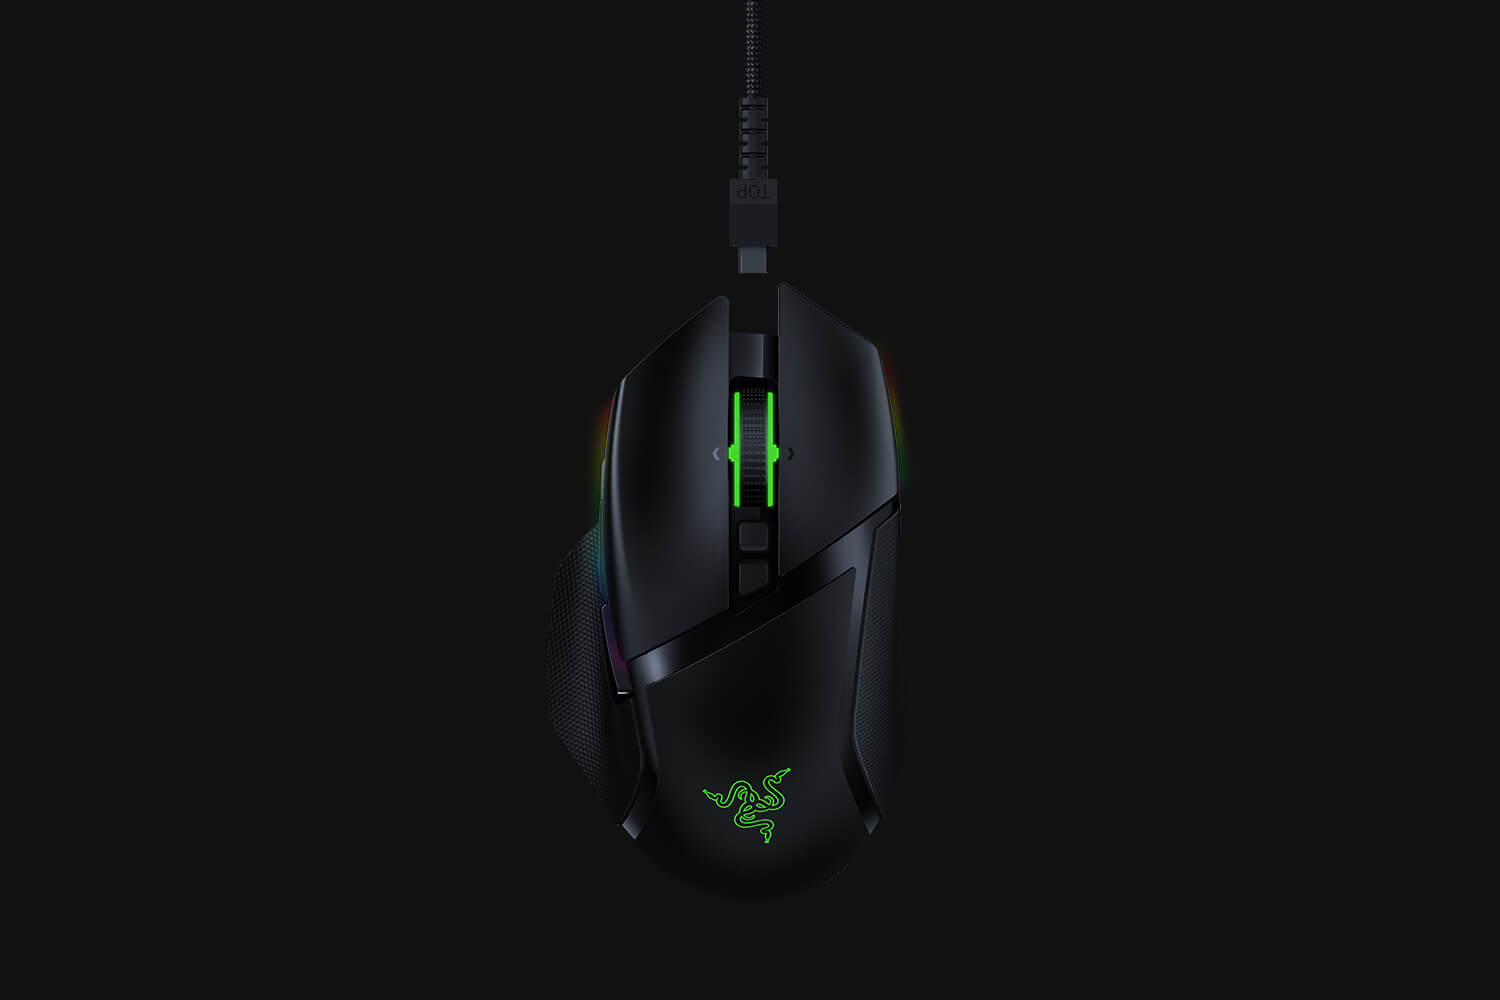 http://31.220.61.170/wp-content/uploads/2020/11/1604201541_470_Razer-Basilisk-Ultimate-HyperSpeed-Wireless-Gaming-Mouse-Review.png